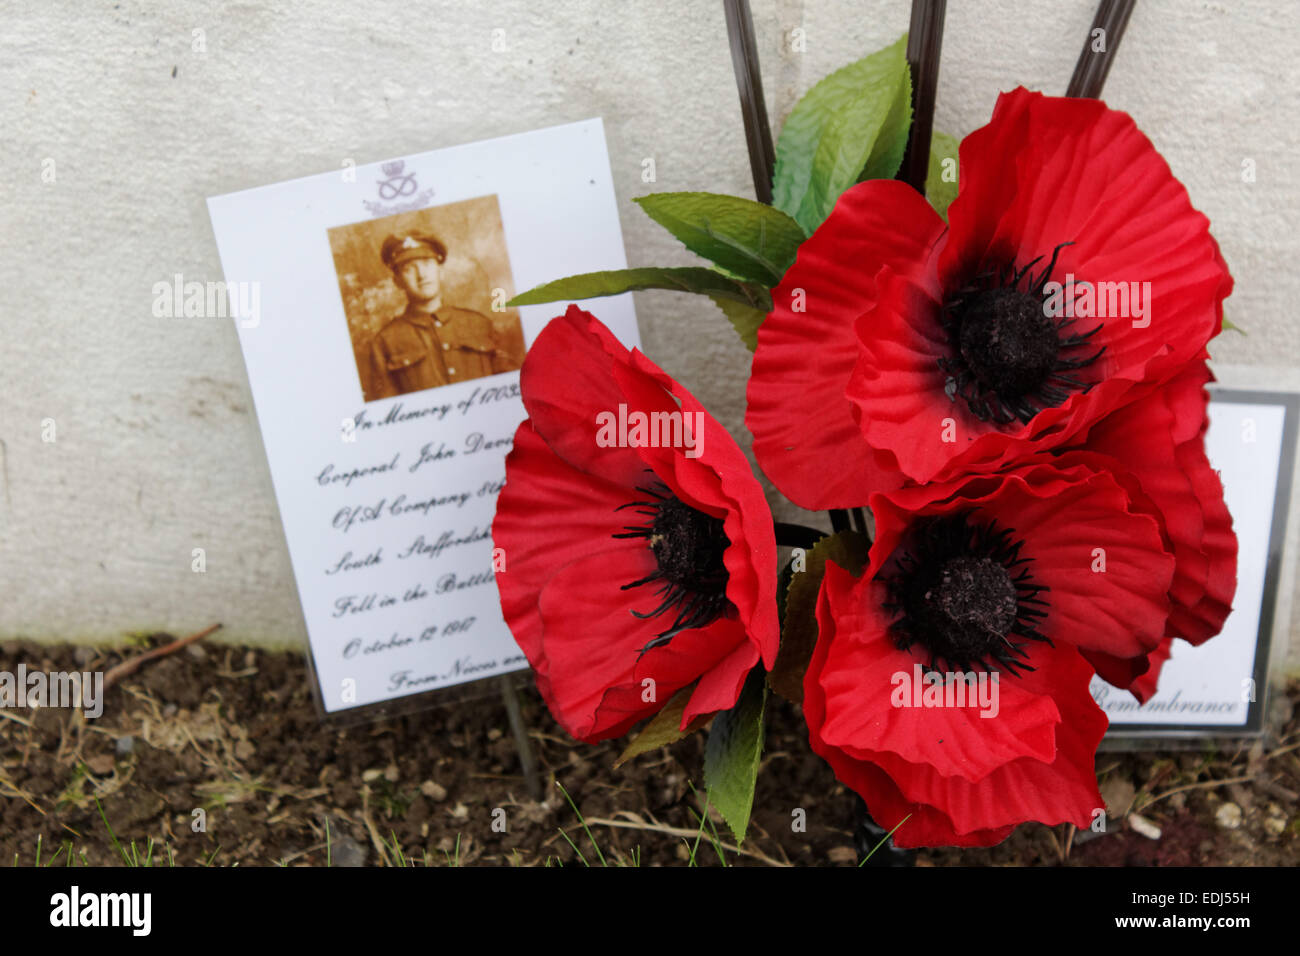 Poppies at a gravestone of a killed soldier of the great war at Tyne Cot Cemetary in Zonnebeke, Belgien. - Stock Image